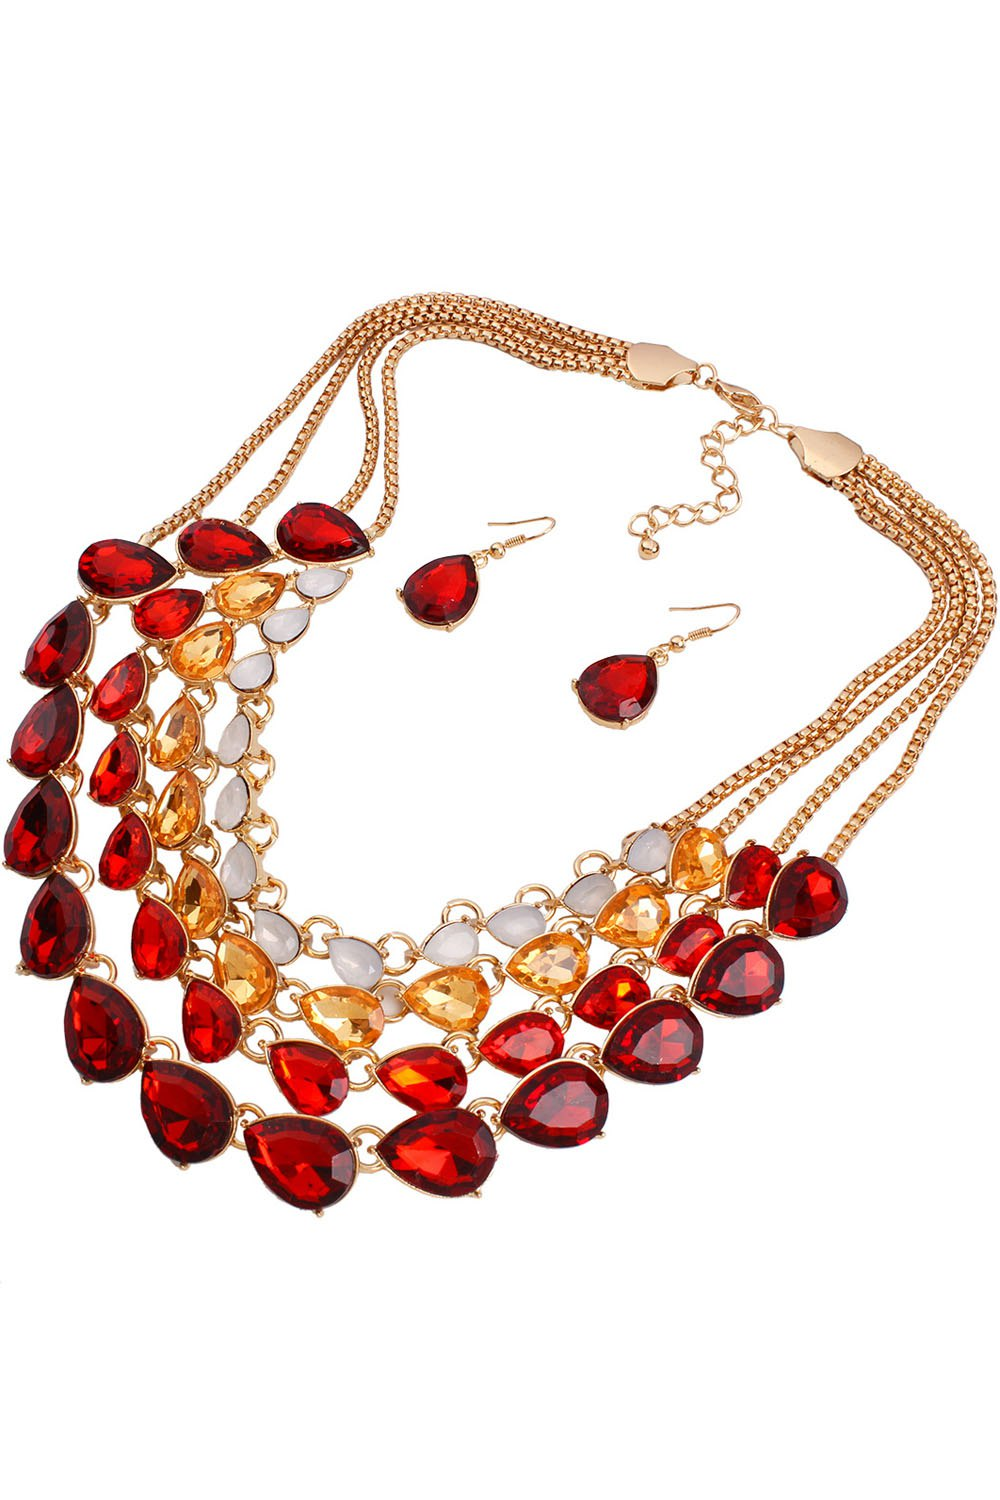 Multilayered Jewelry Necklace and Earrings